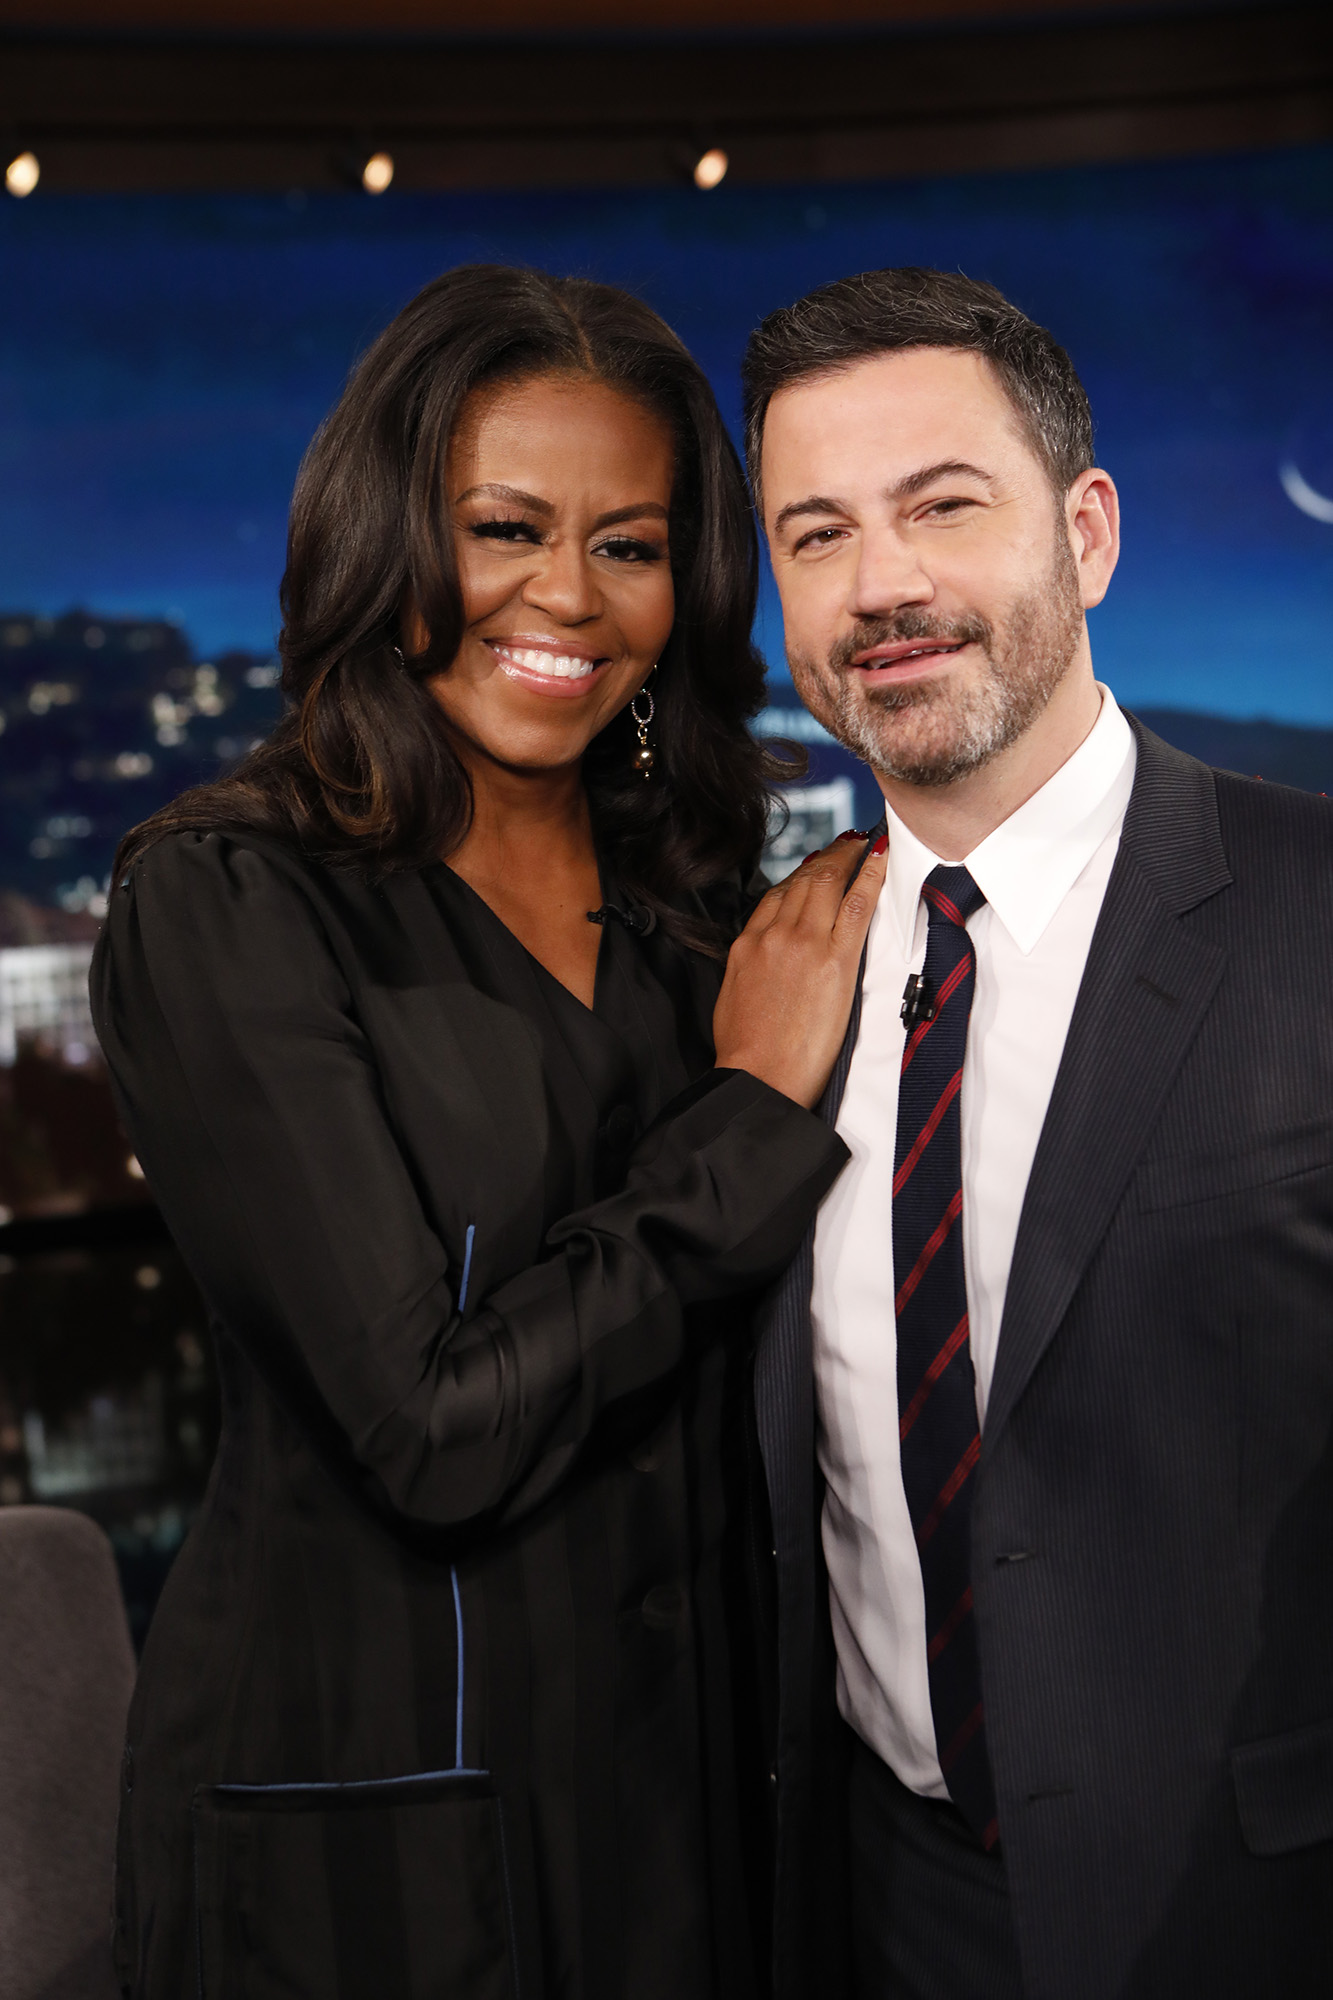 In Case You Missed It: Michelle Obama On Jimmy Kimmel Live